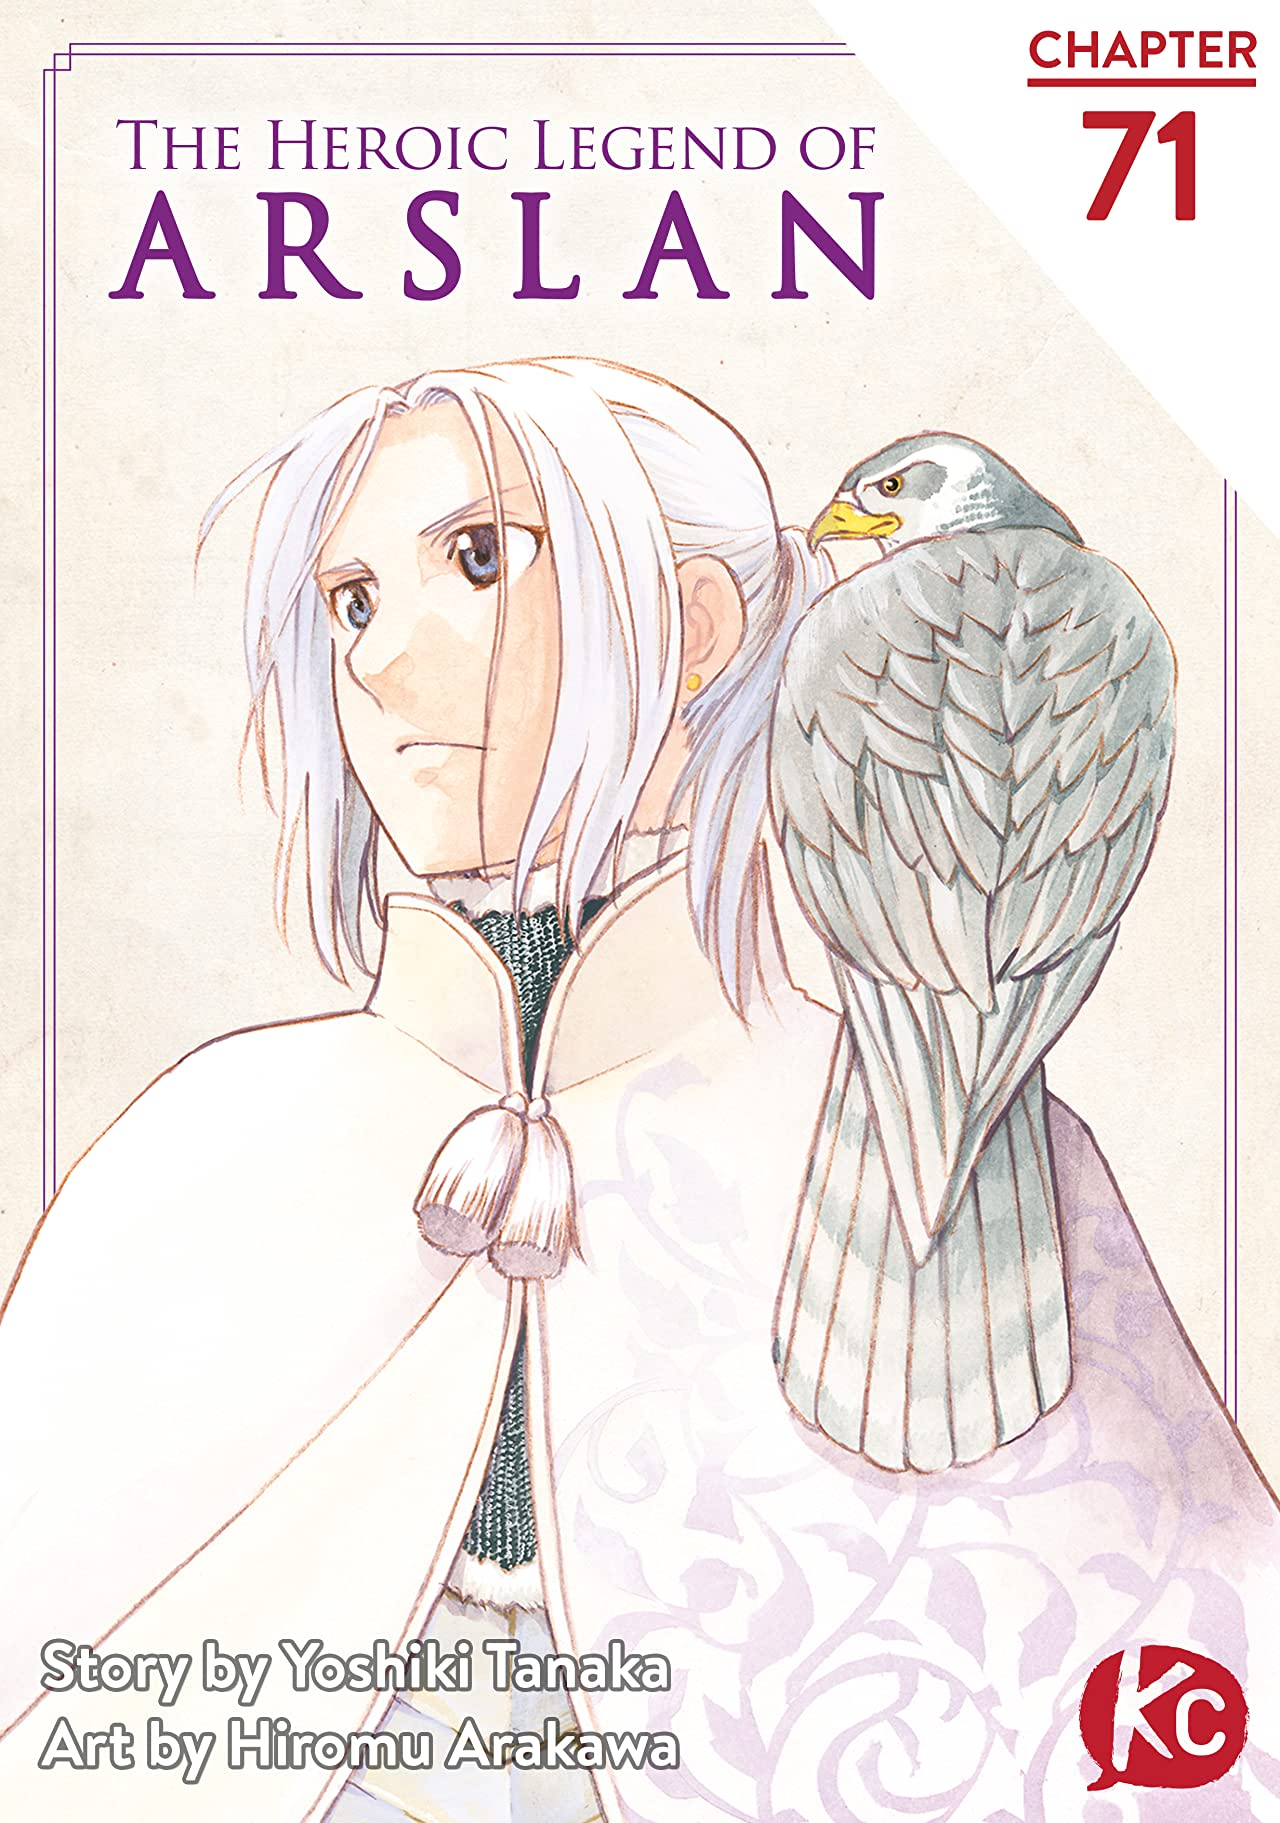 The Heroic Legend of Arslan #71